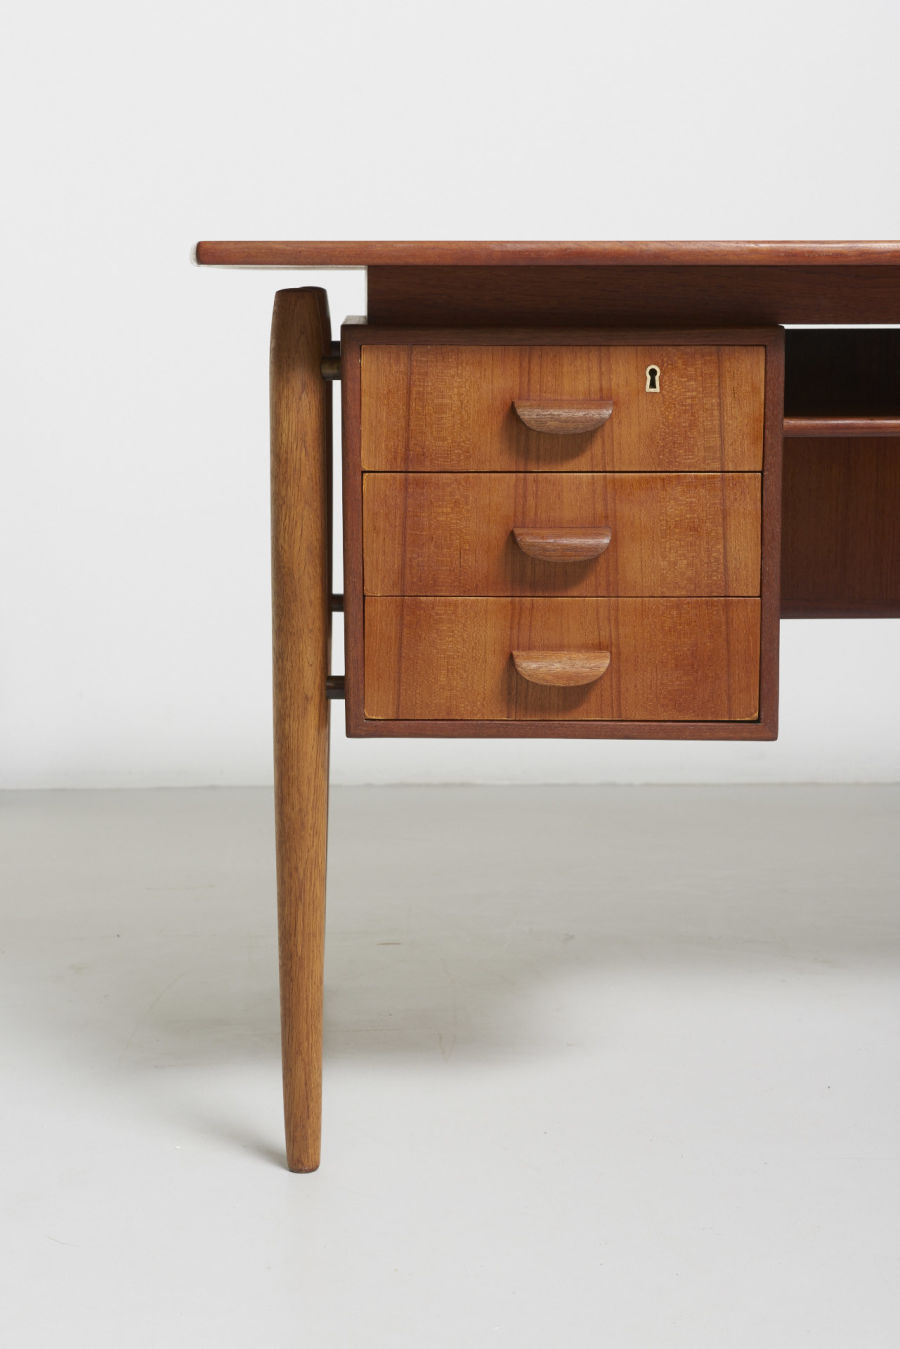 modest furniture vintage 1502 danish desk in teak with oak legs 03